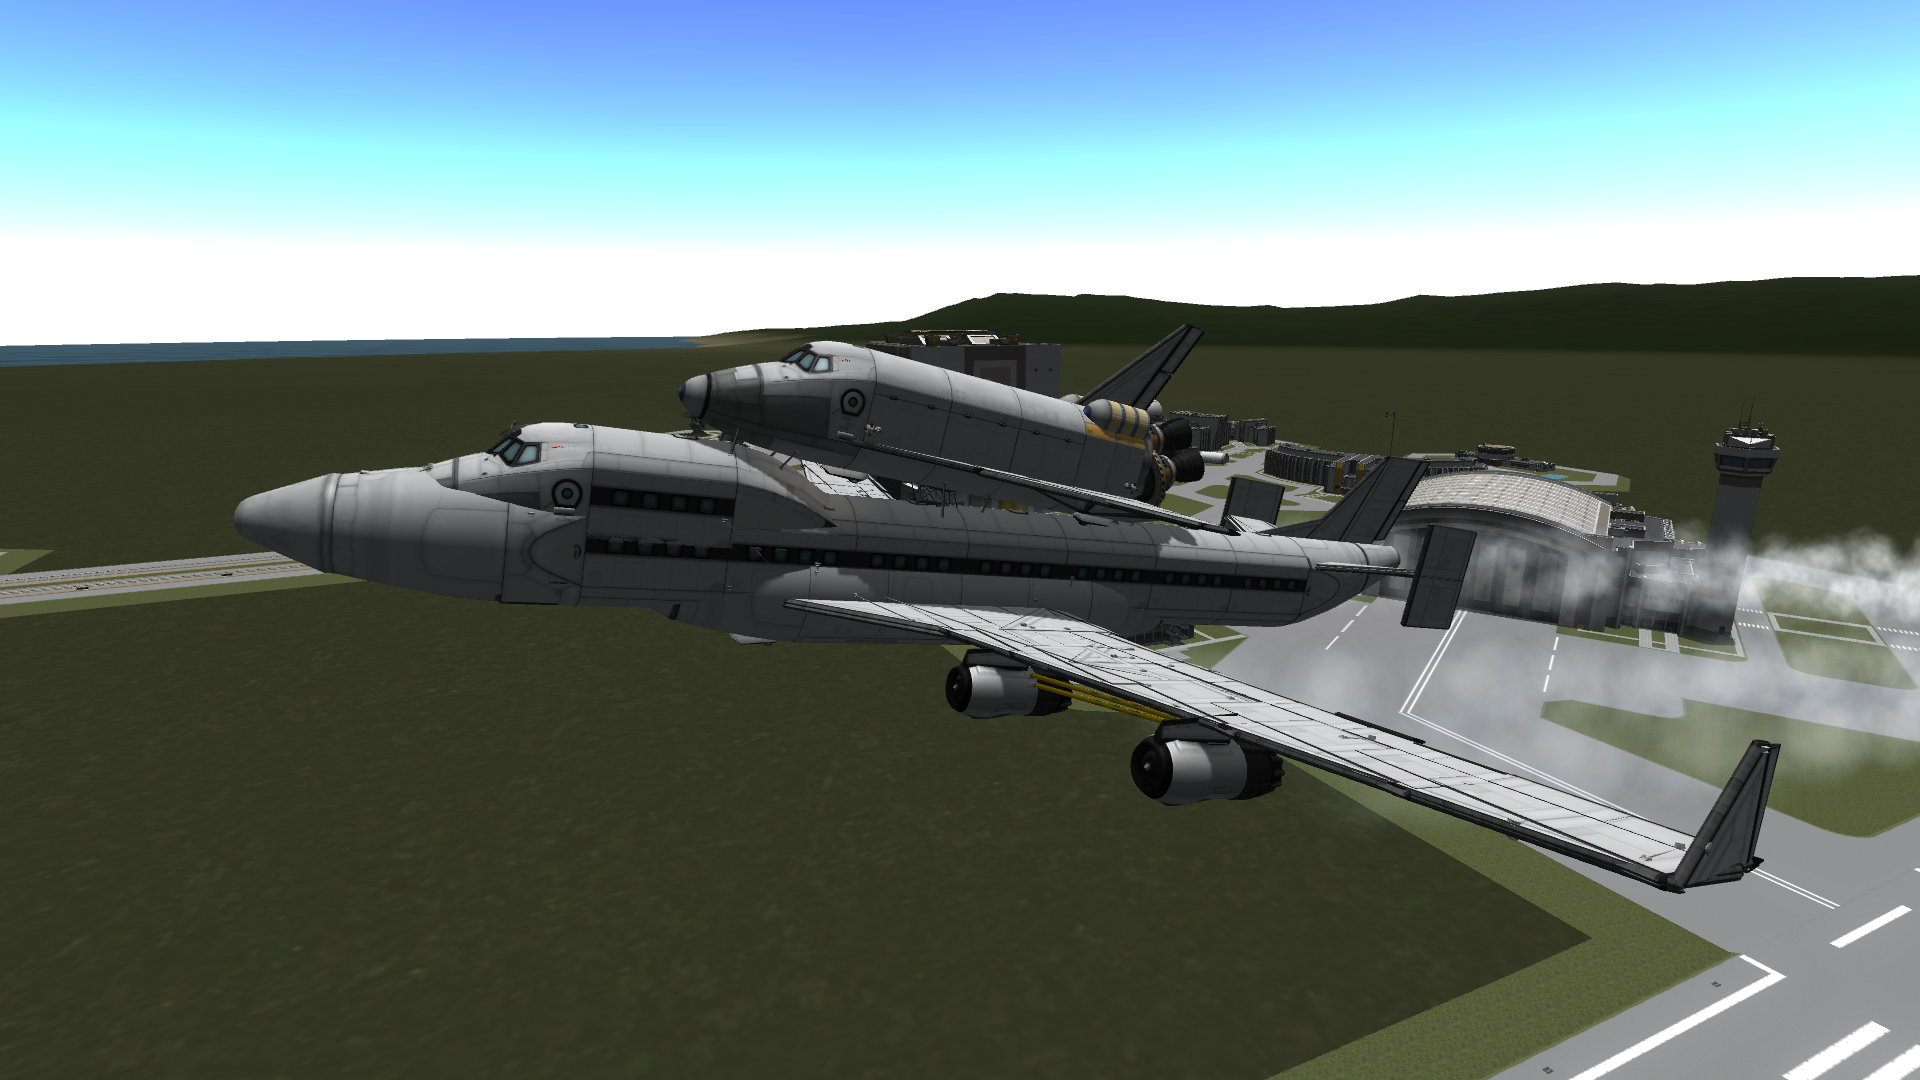 ksp space shuttle craft - photo #17